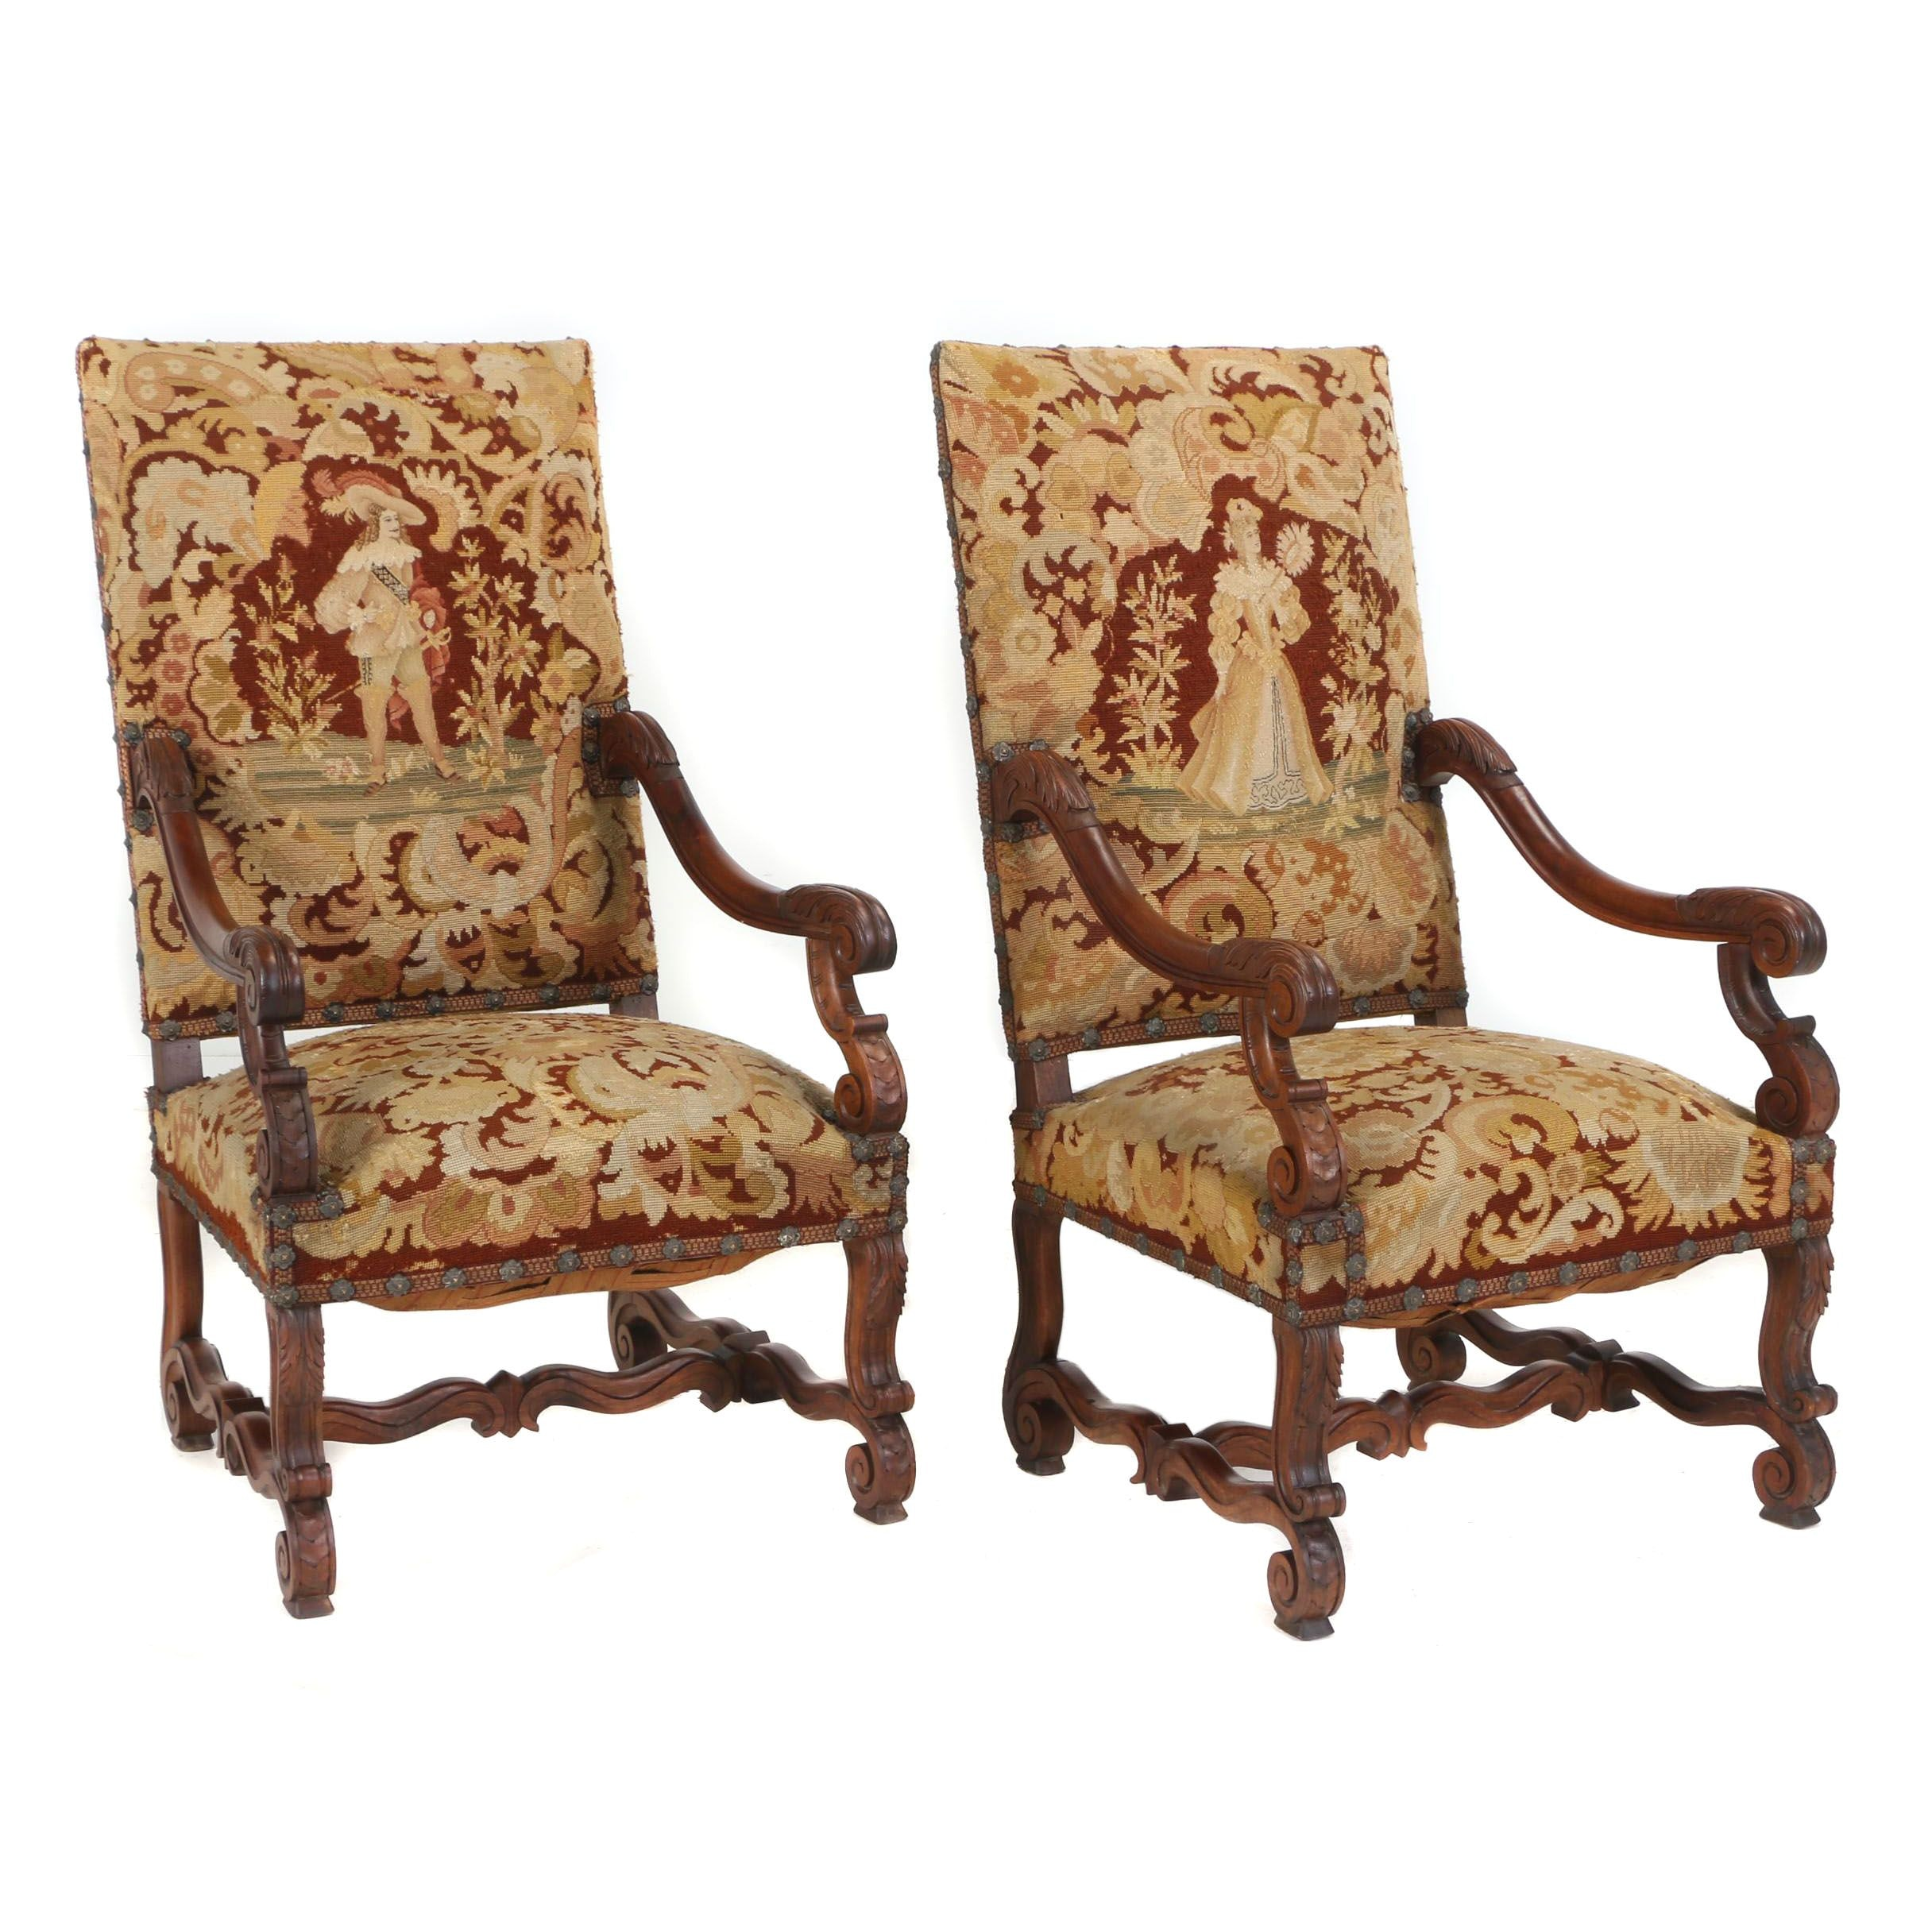 Pair of Baroque Style Carved Walnut Open Armchairs, Late 19th/Early 20th Century